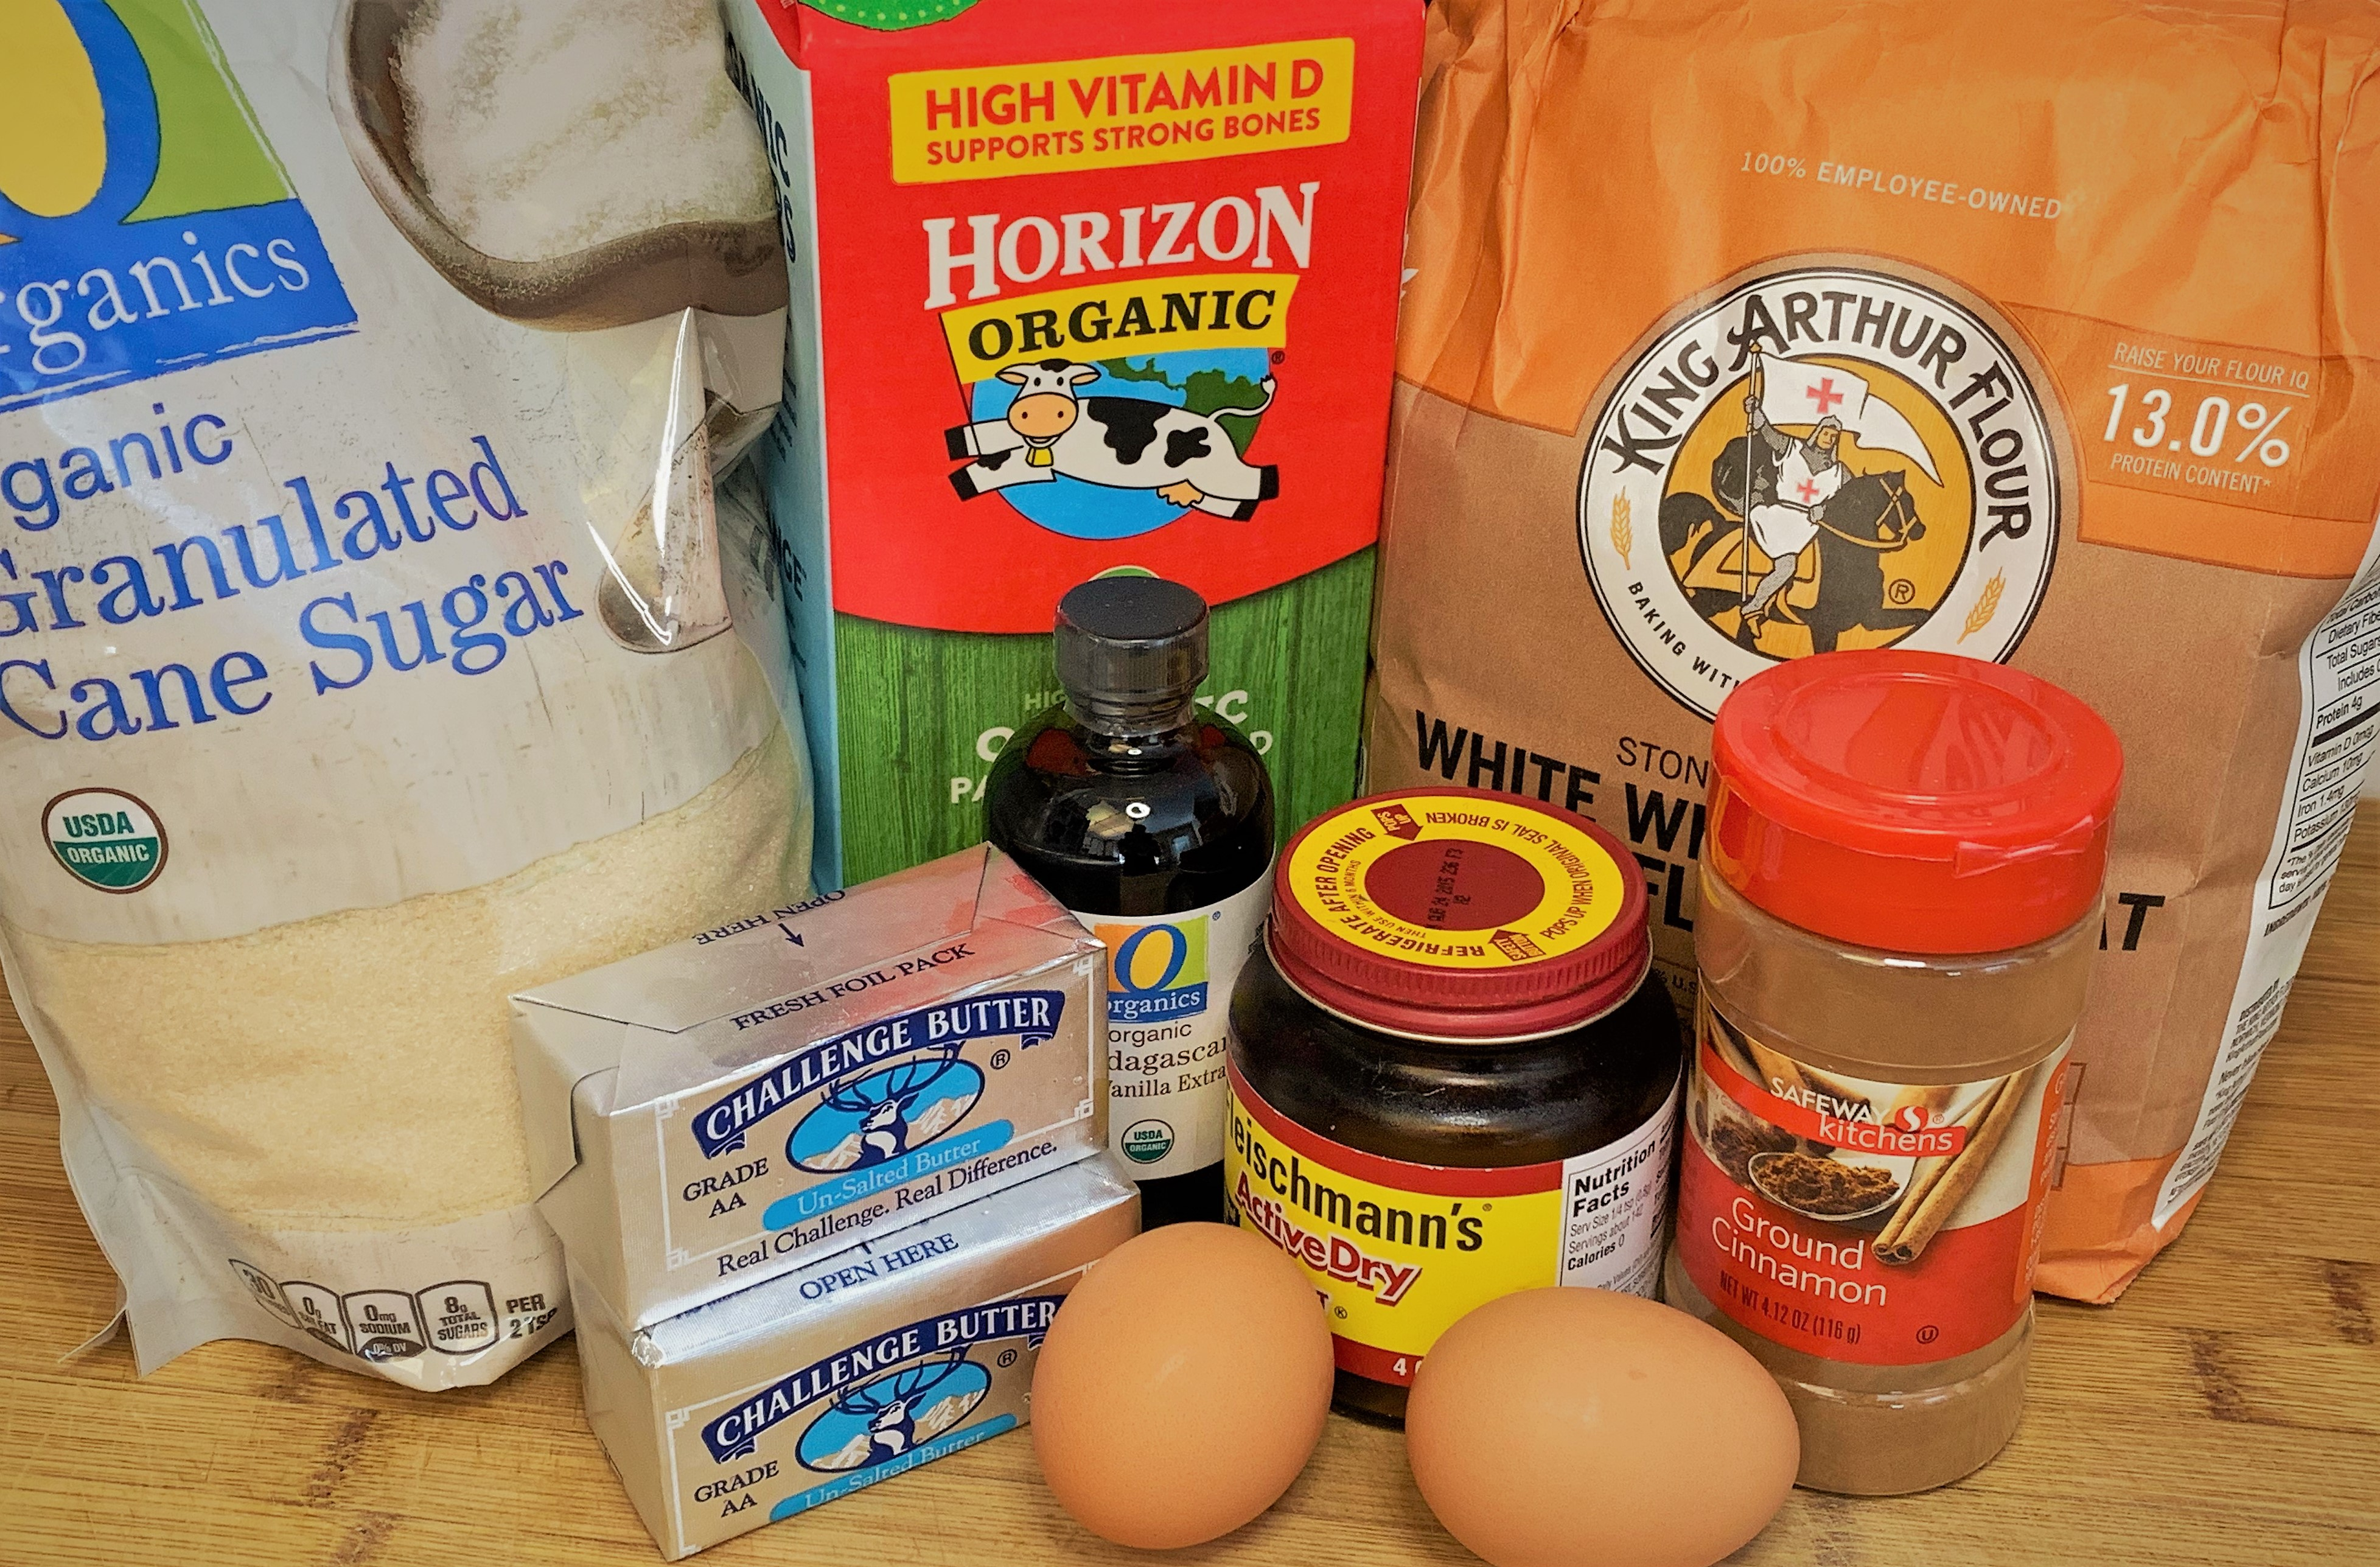 The ingredients for our Croissant Doughnuts